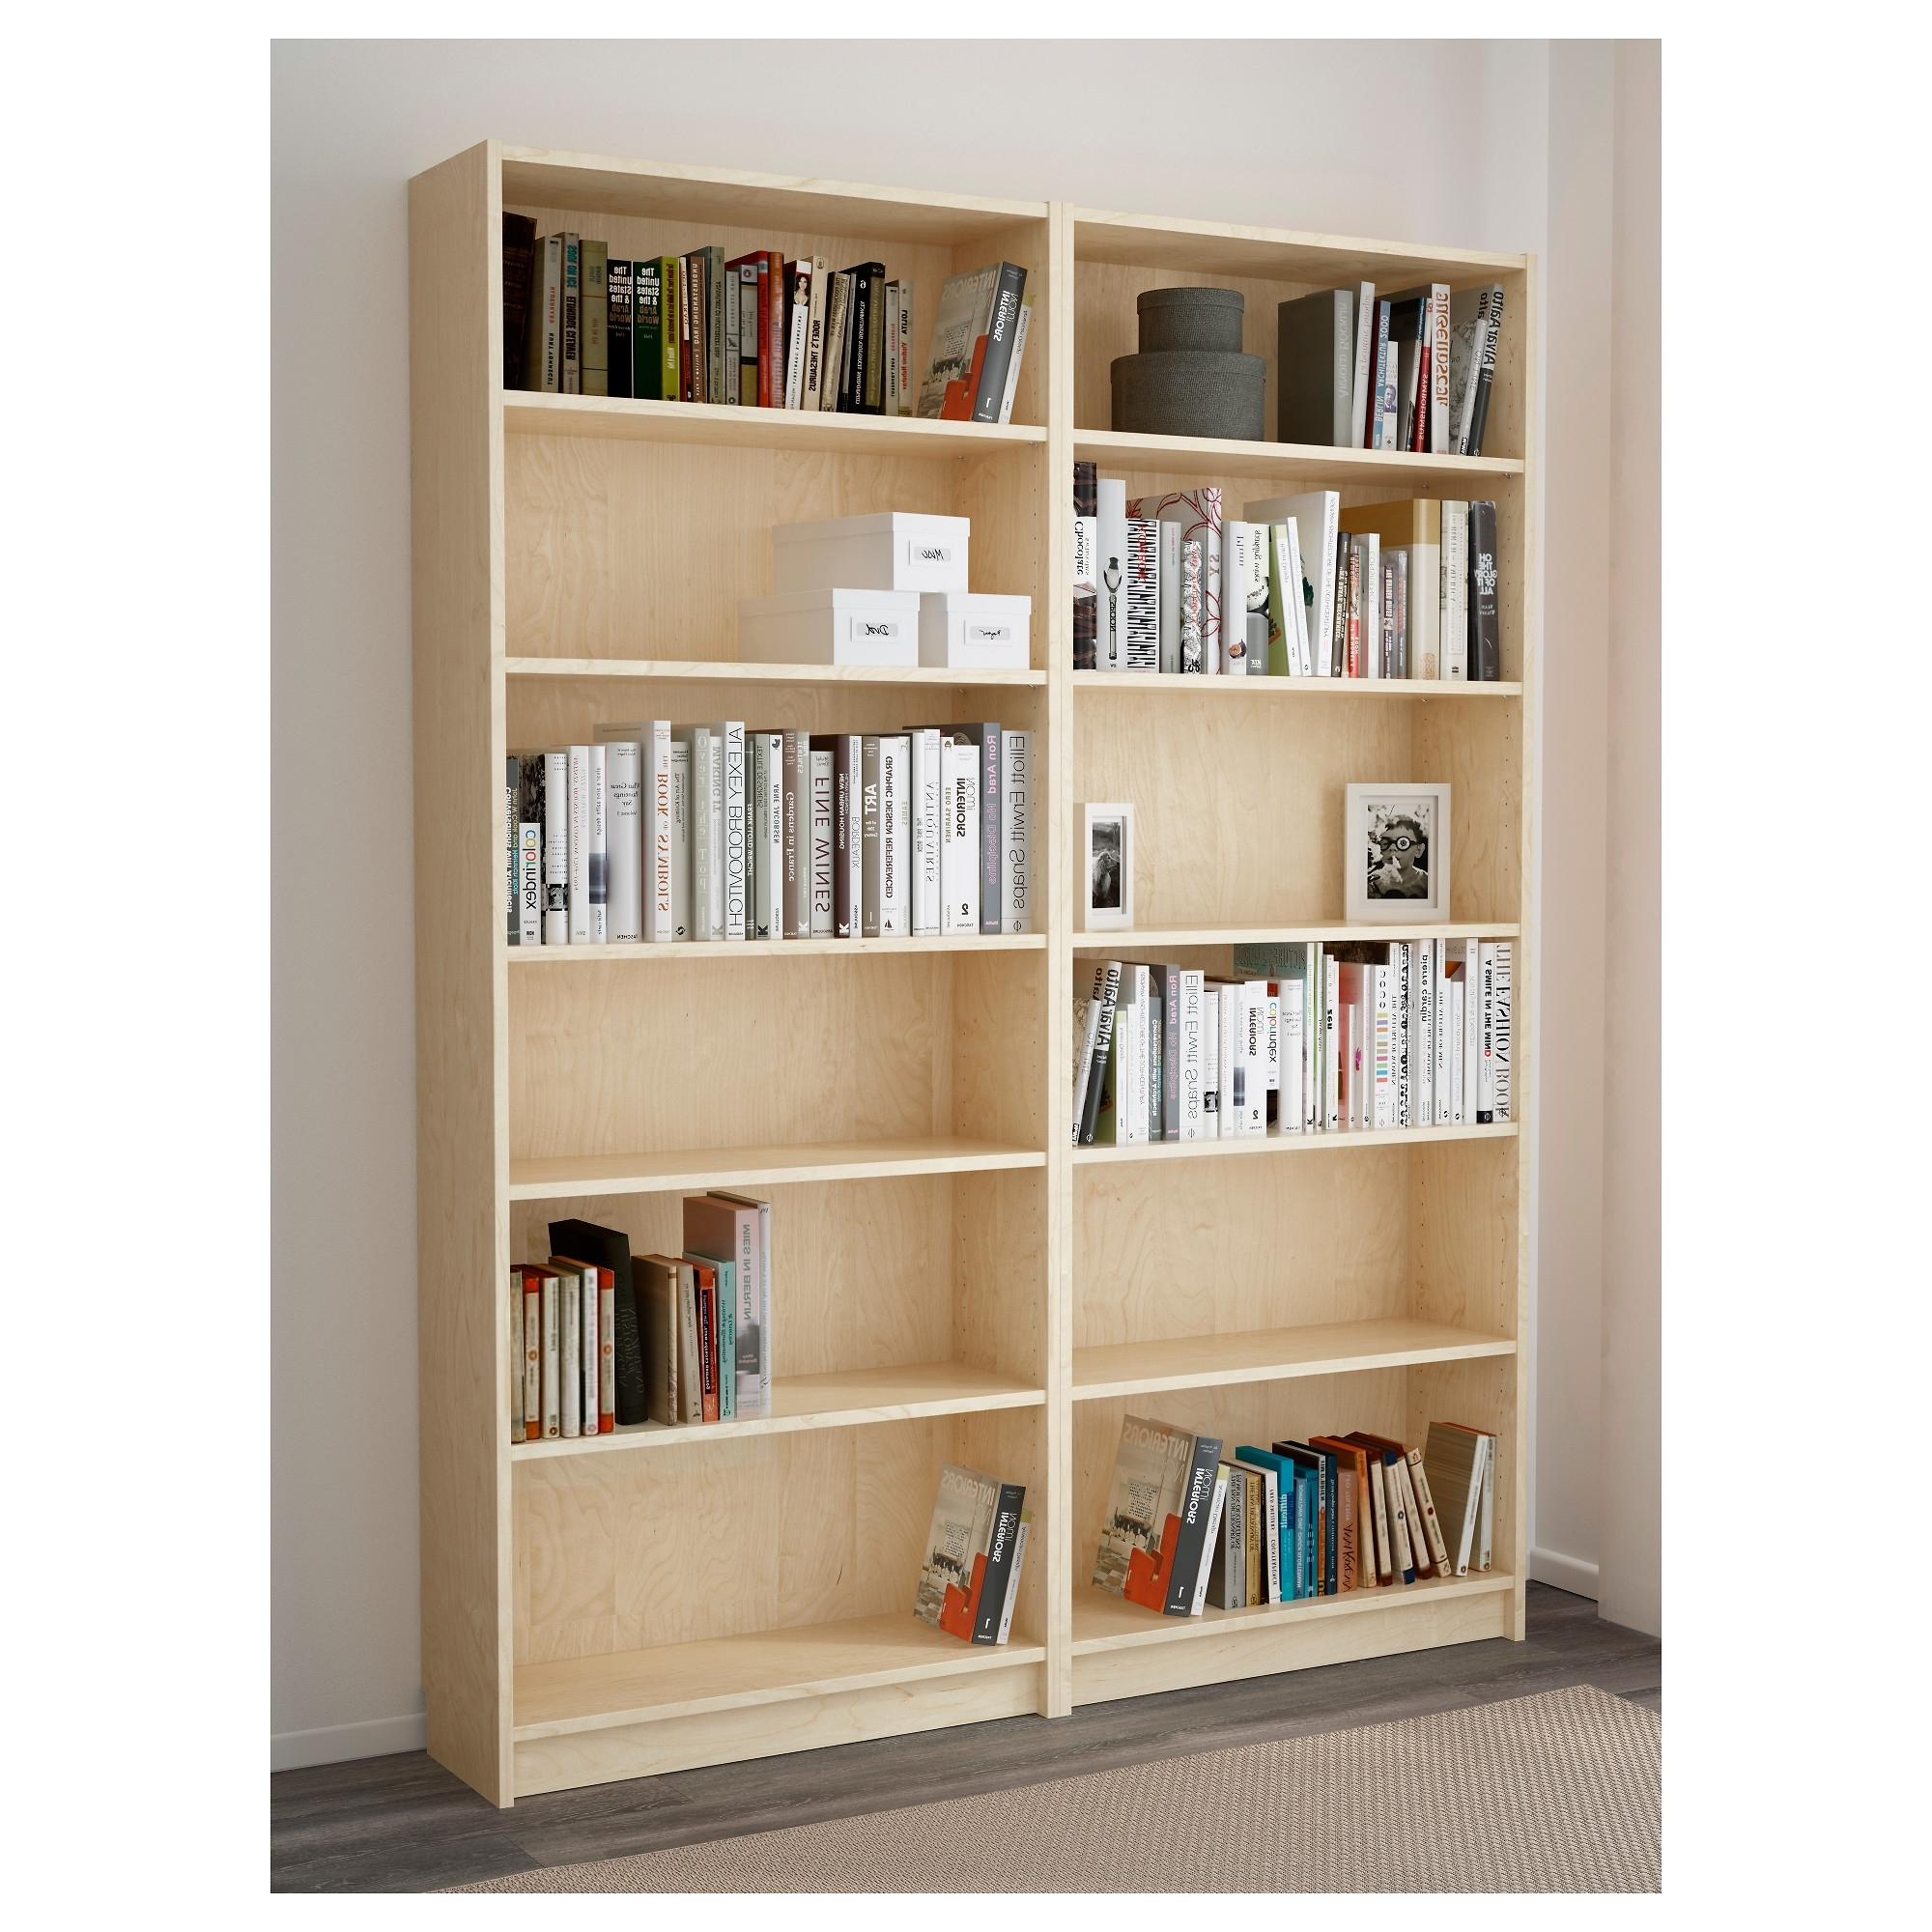 Craigslist Bookcases Pertaining To Well Liked Furniture Home: Impressive Craigslist Bookcase Photos Design (View 7 of 15)